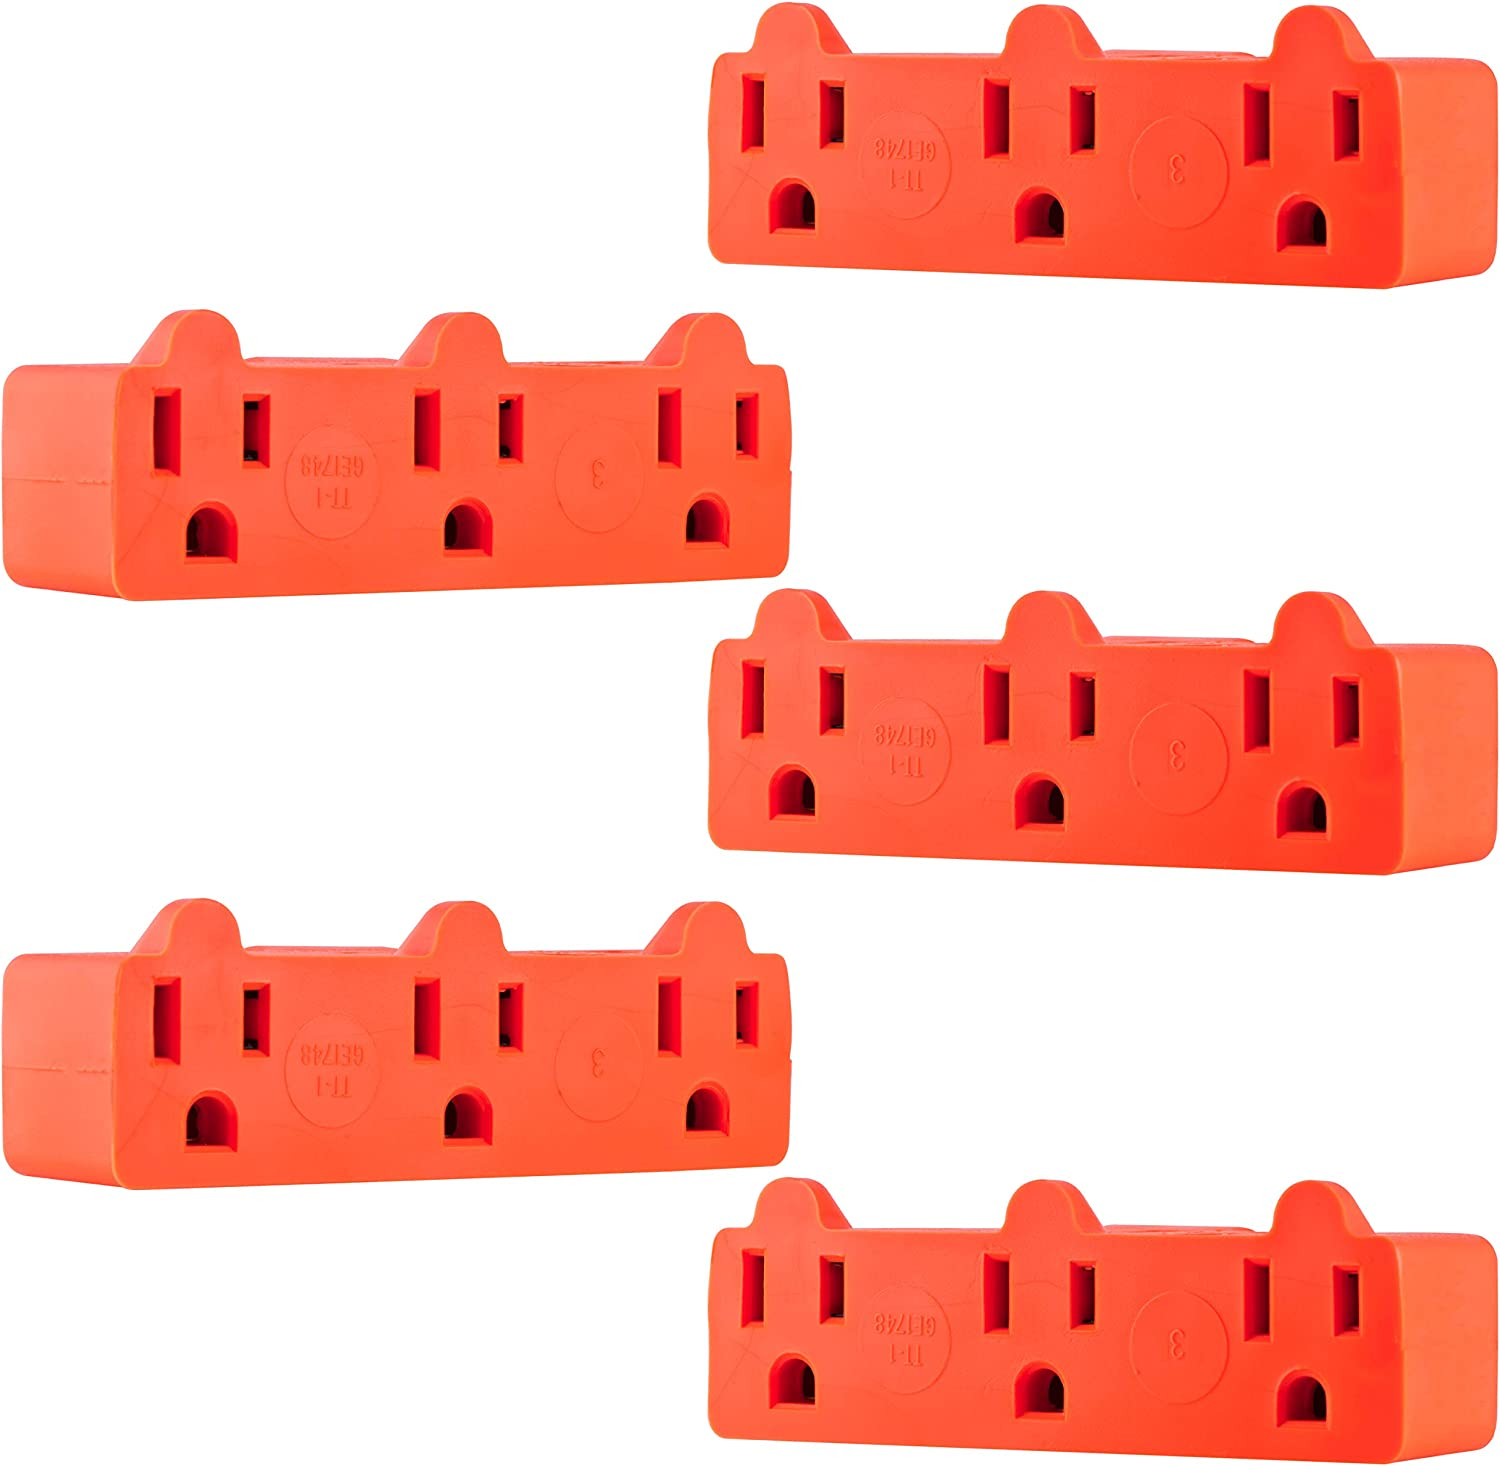 GE Heavy Duty 3 Outlet Adapter, 5 Pack, 3-Prong Power Splitter, Grounded Wall Tap, UL Listed, Orange, 50909